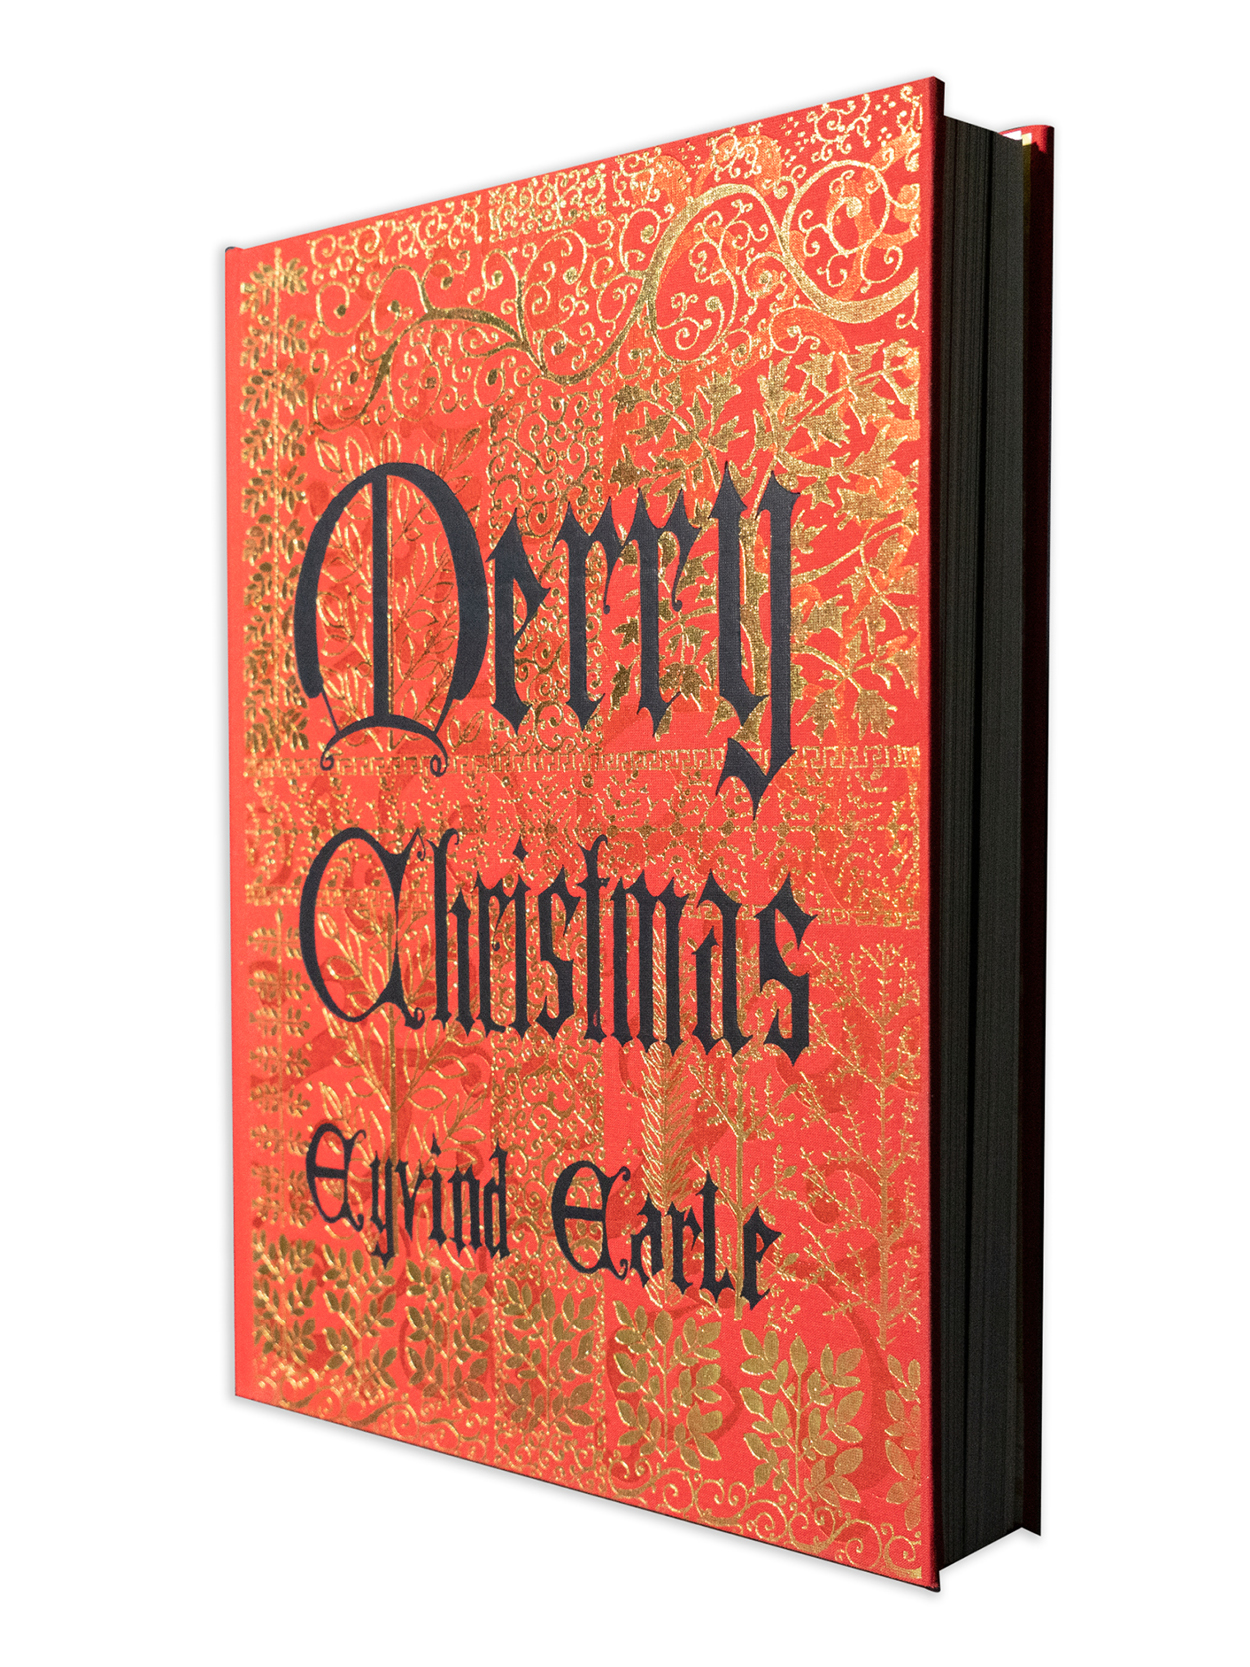 Christmas Card Art Collection – Gallery21, Carmel CA – featuring Eyvind Earle